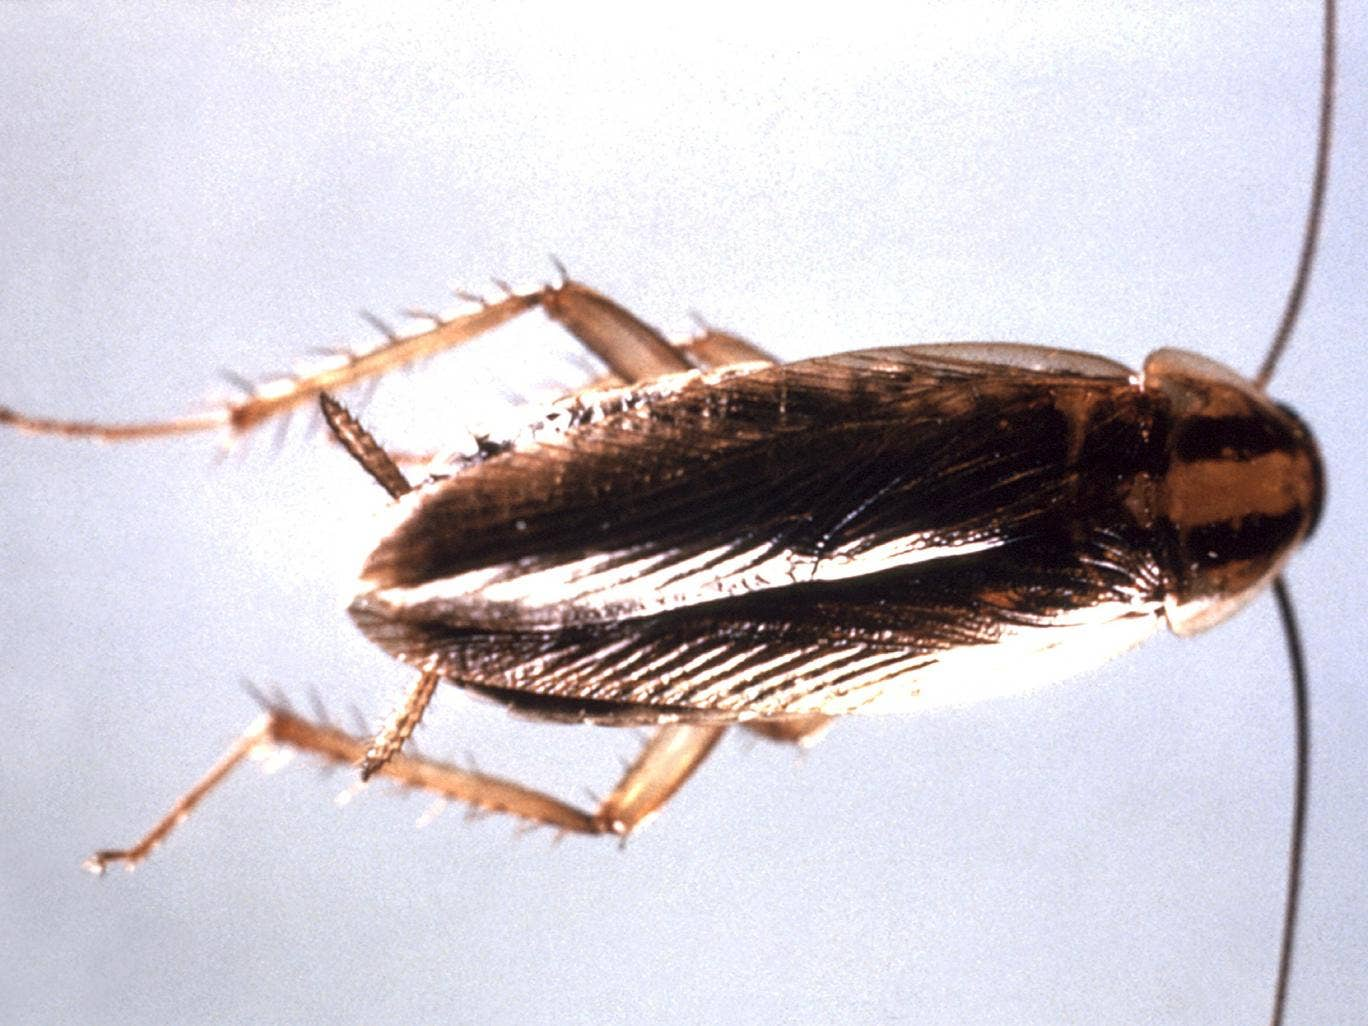 German cockroaches - smaller than the famous American cockroach - have evolved to lose their sweet tooth